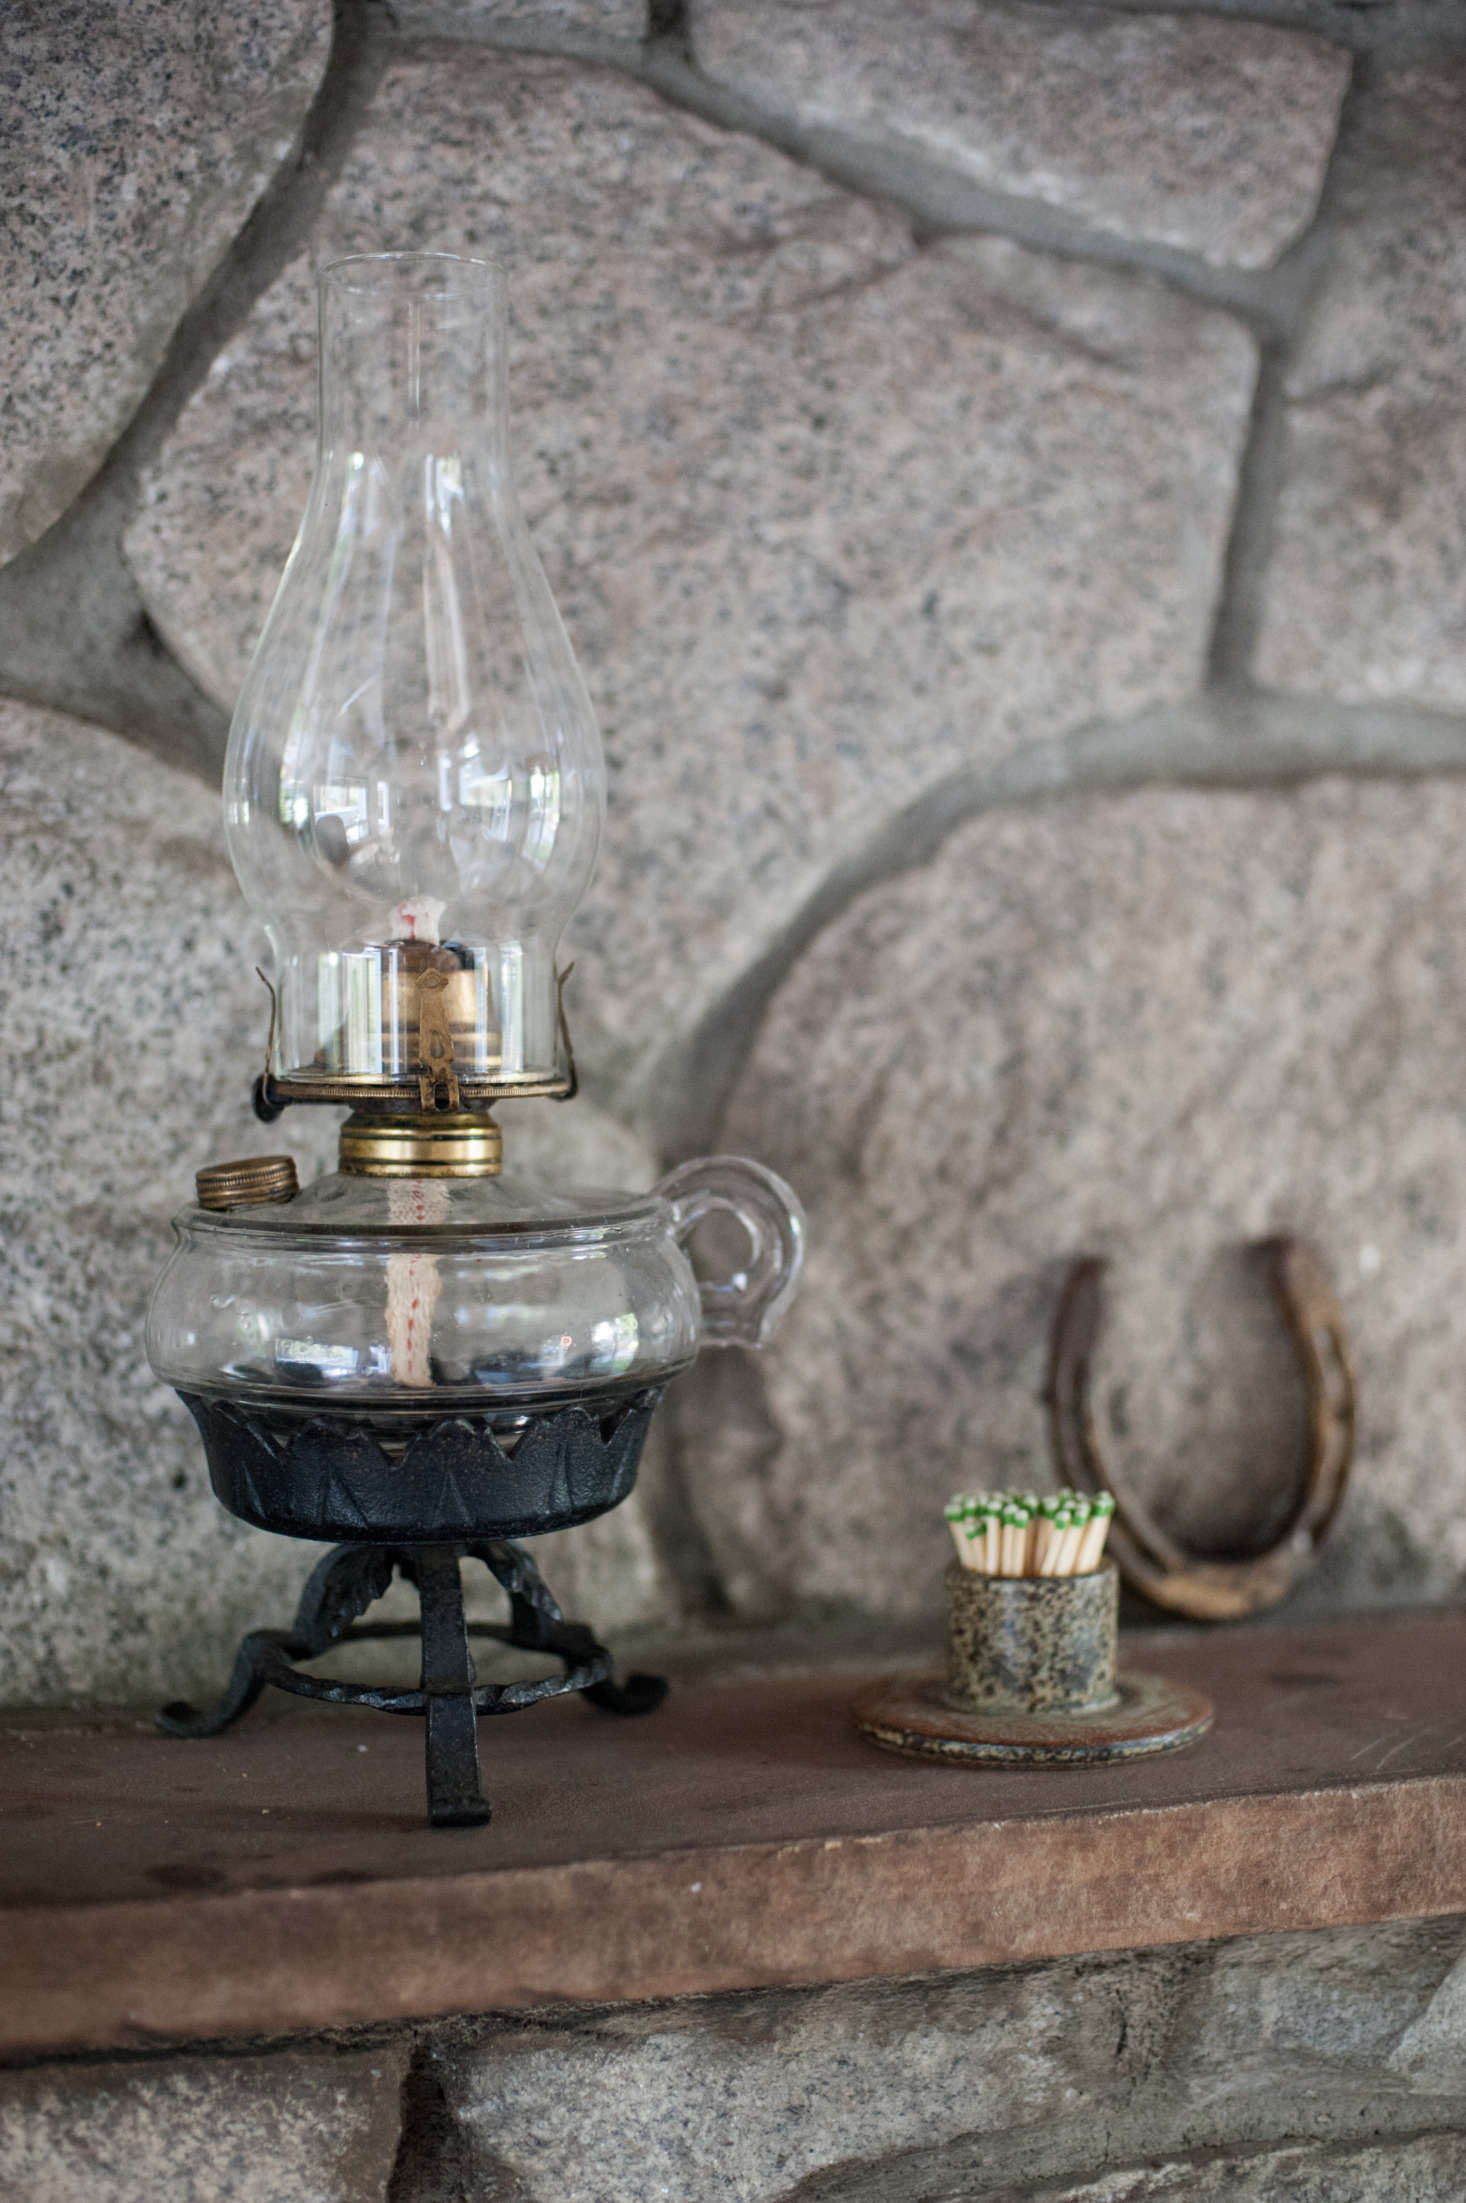 The kerosene lamp was a housewarming gift from a friend who picked it up on a visit home to Michigan: &#8